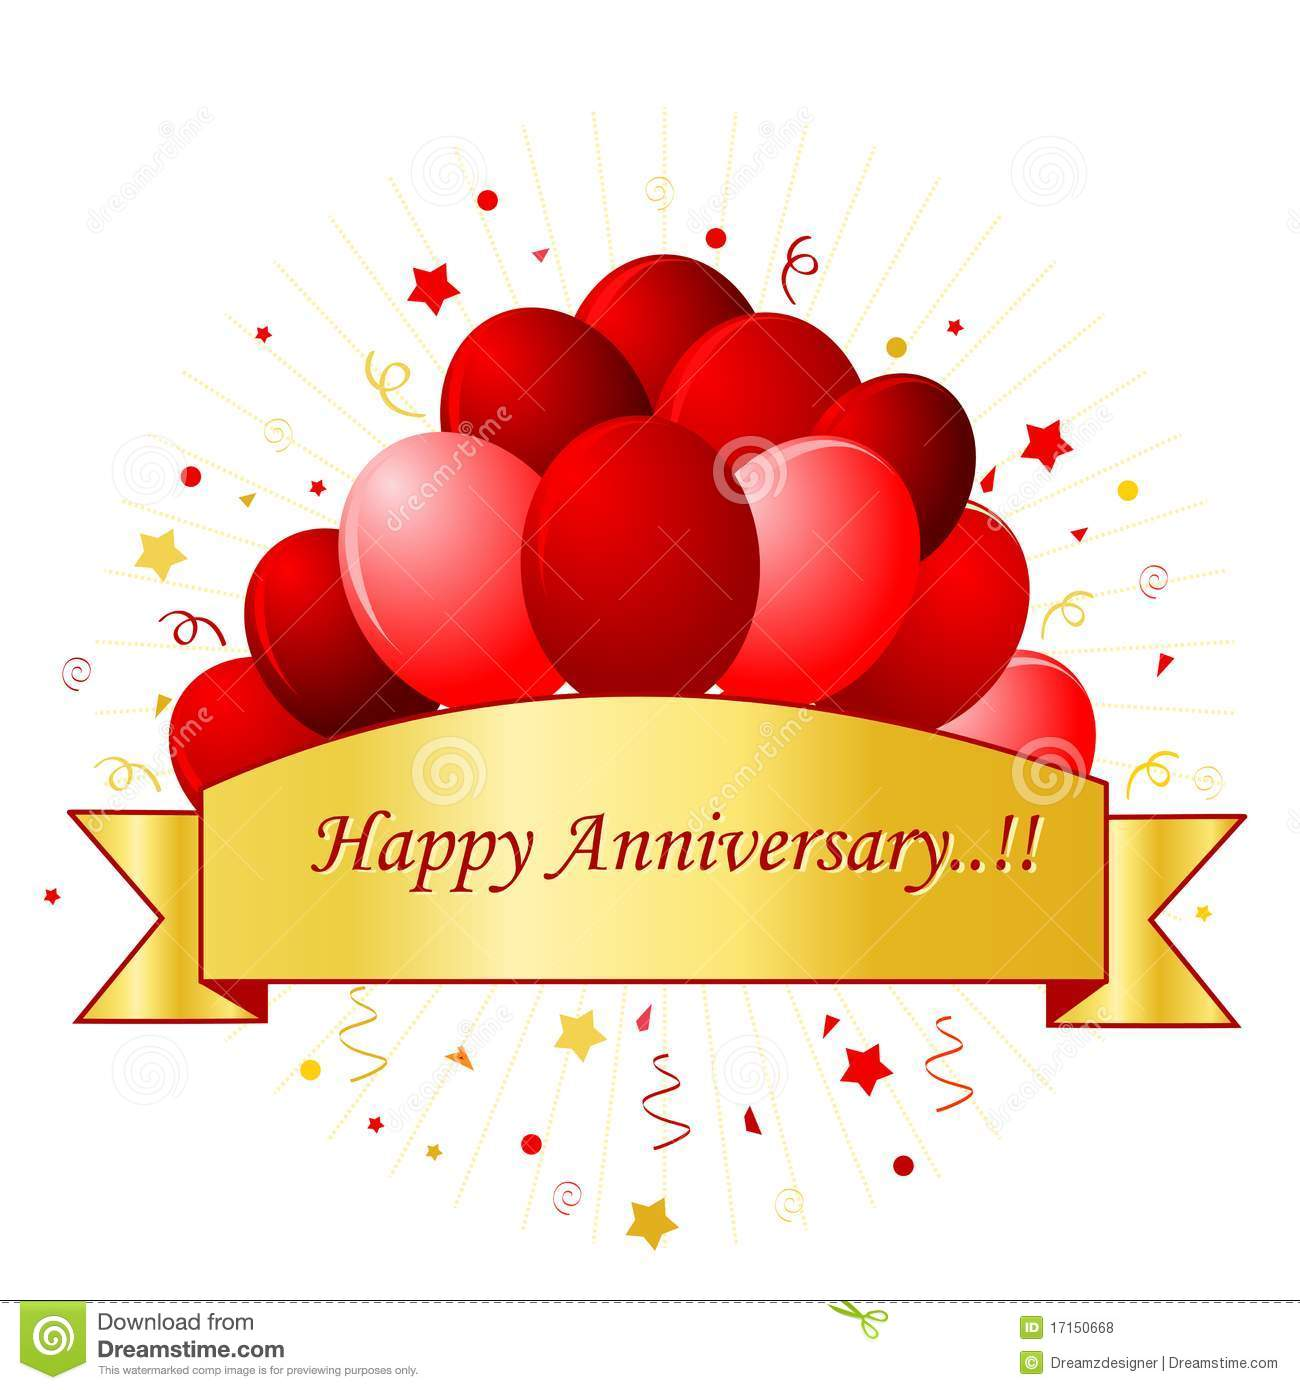 Happy Anniversary Banner Clipart.